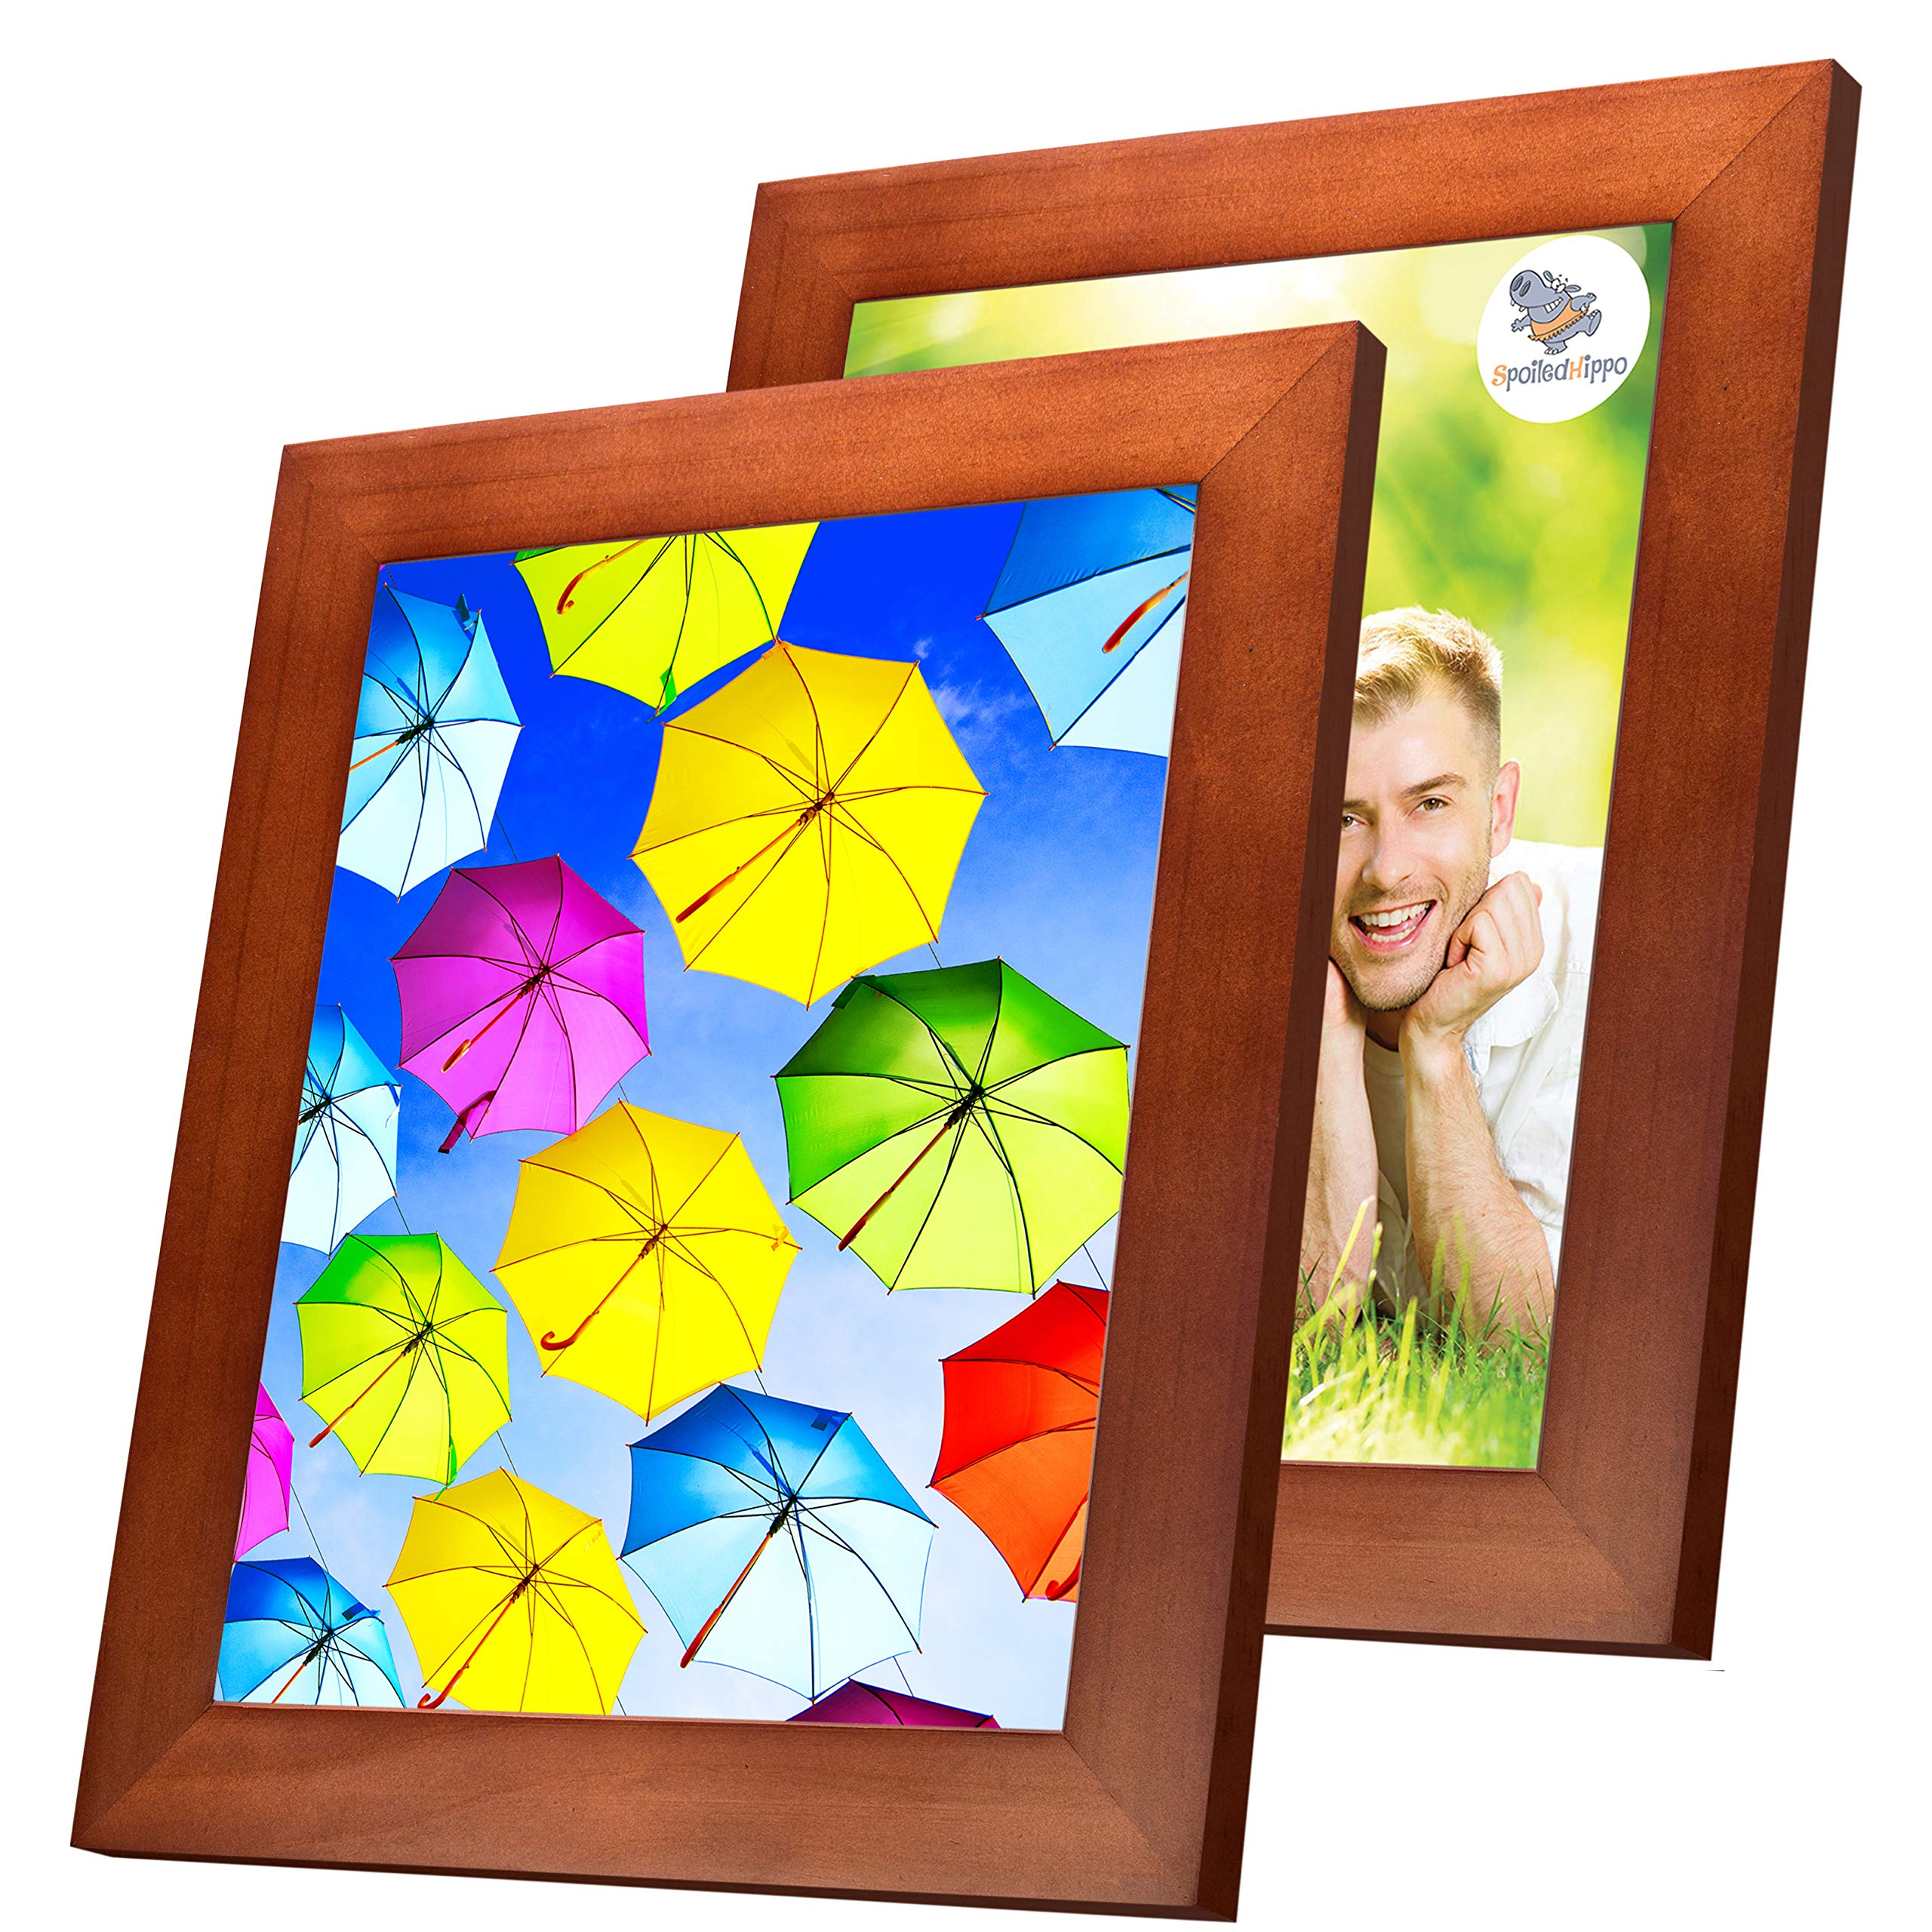 8x10 Picture Frame Brown (2 Pack) - Wood Photo Frames with Glass Cover - Made to Display 8 by 10 Inch Photos w/o Mat or 5x7 and 3x5 with Mats - Hanging or Standing - Vertical or Horizontal …